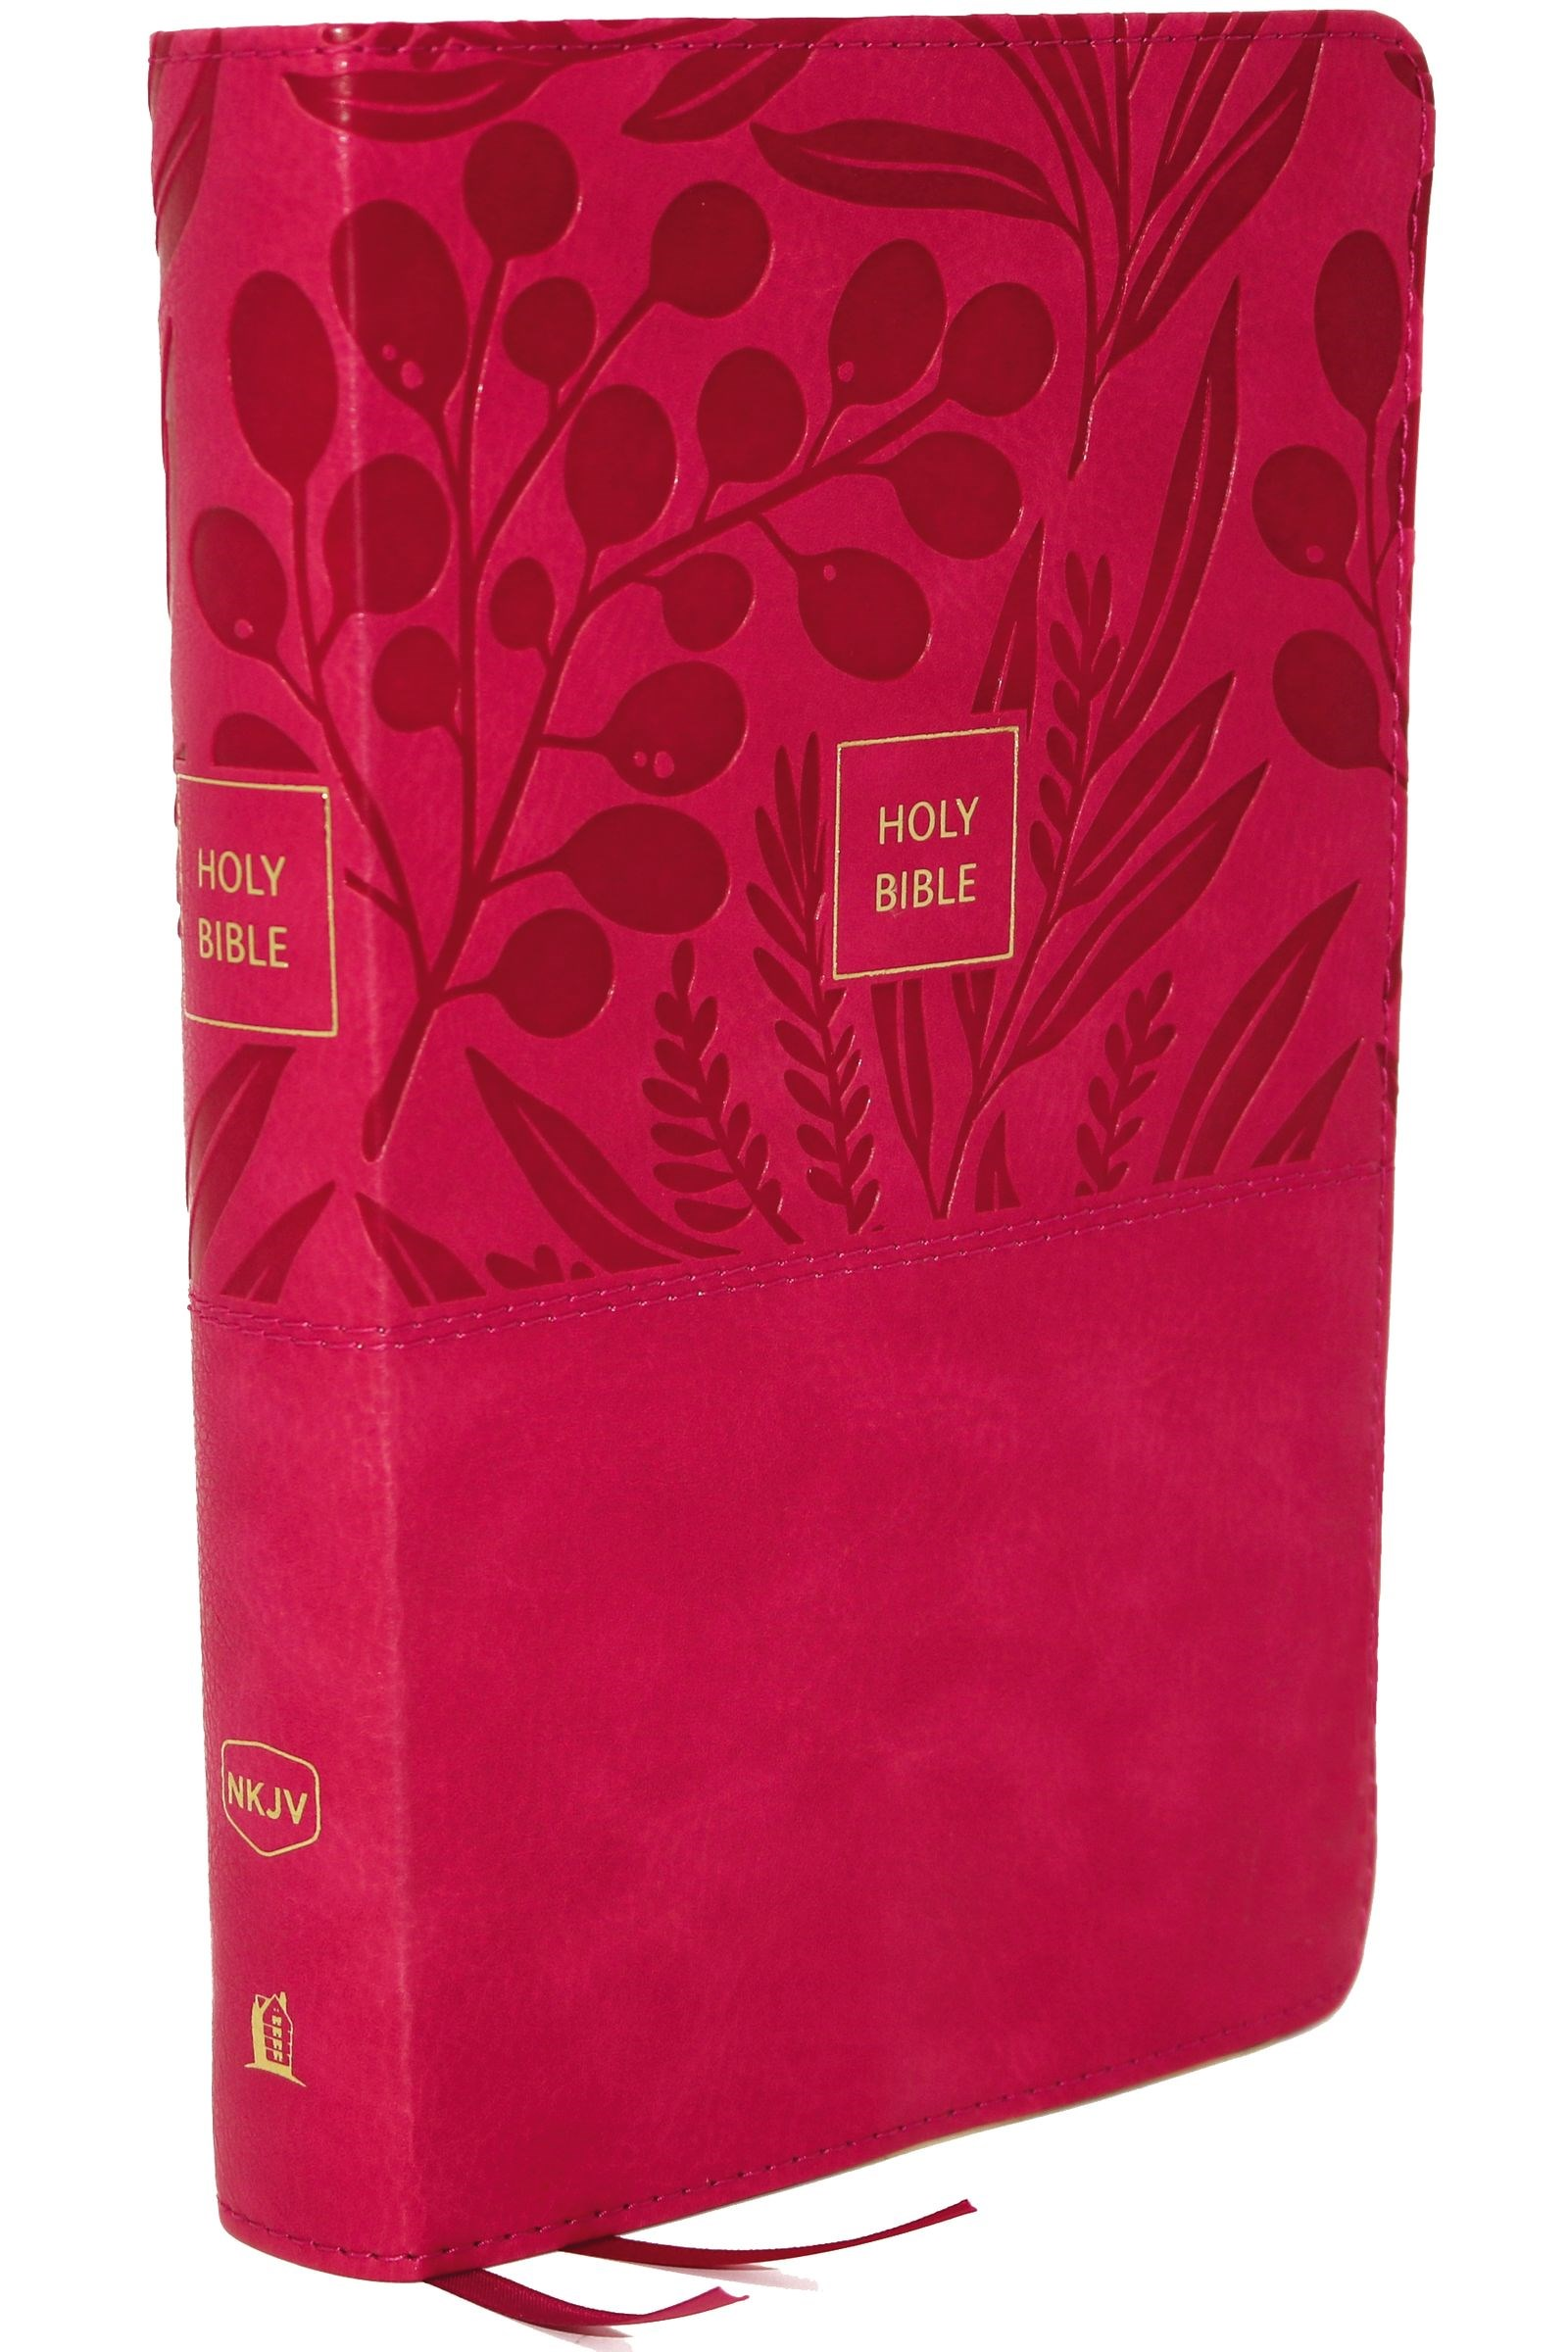 NKJV Personal Size Large Print Reference Bible (Comfort Print)-Pink Leathersoft